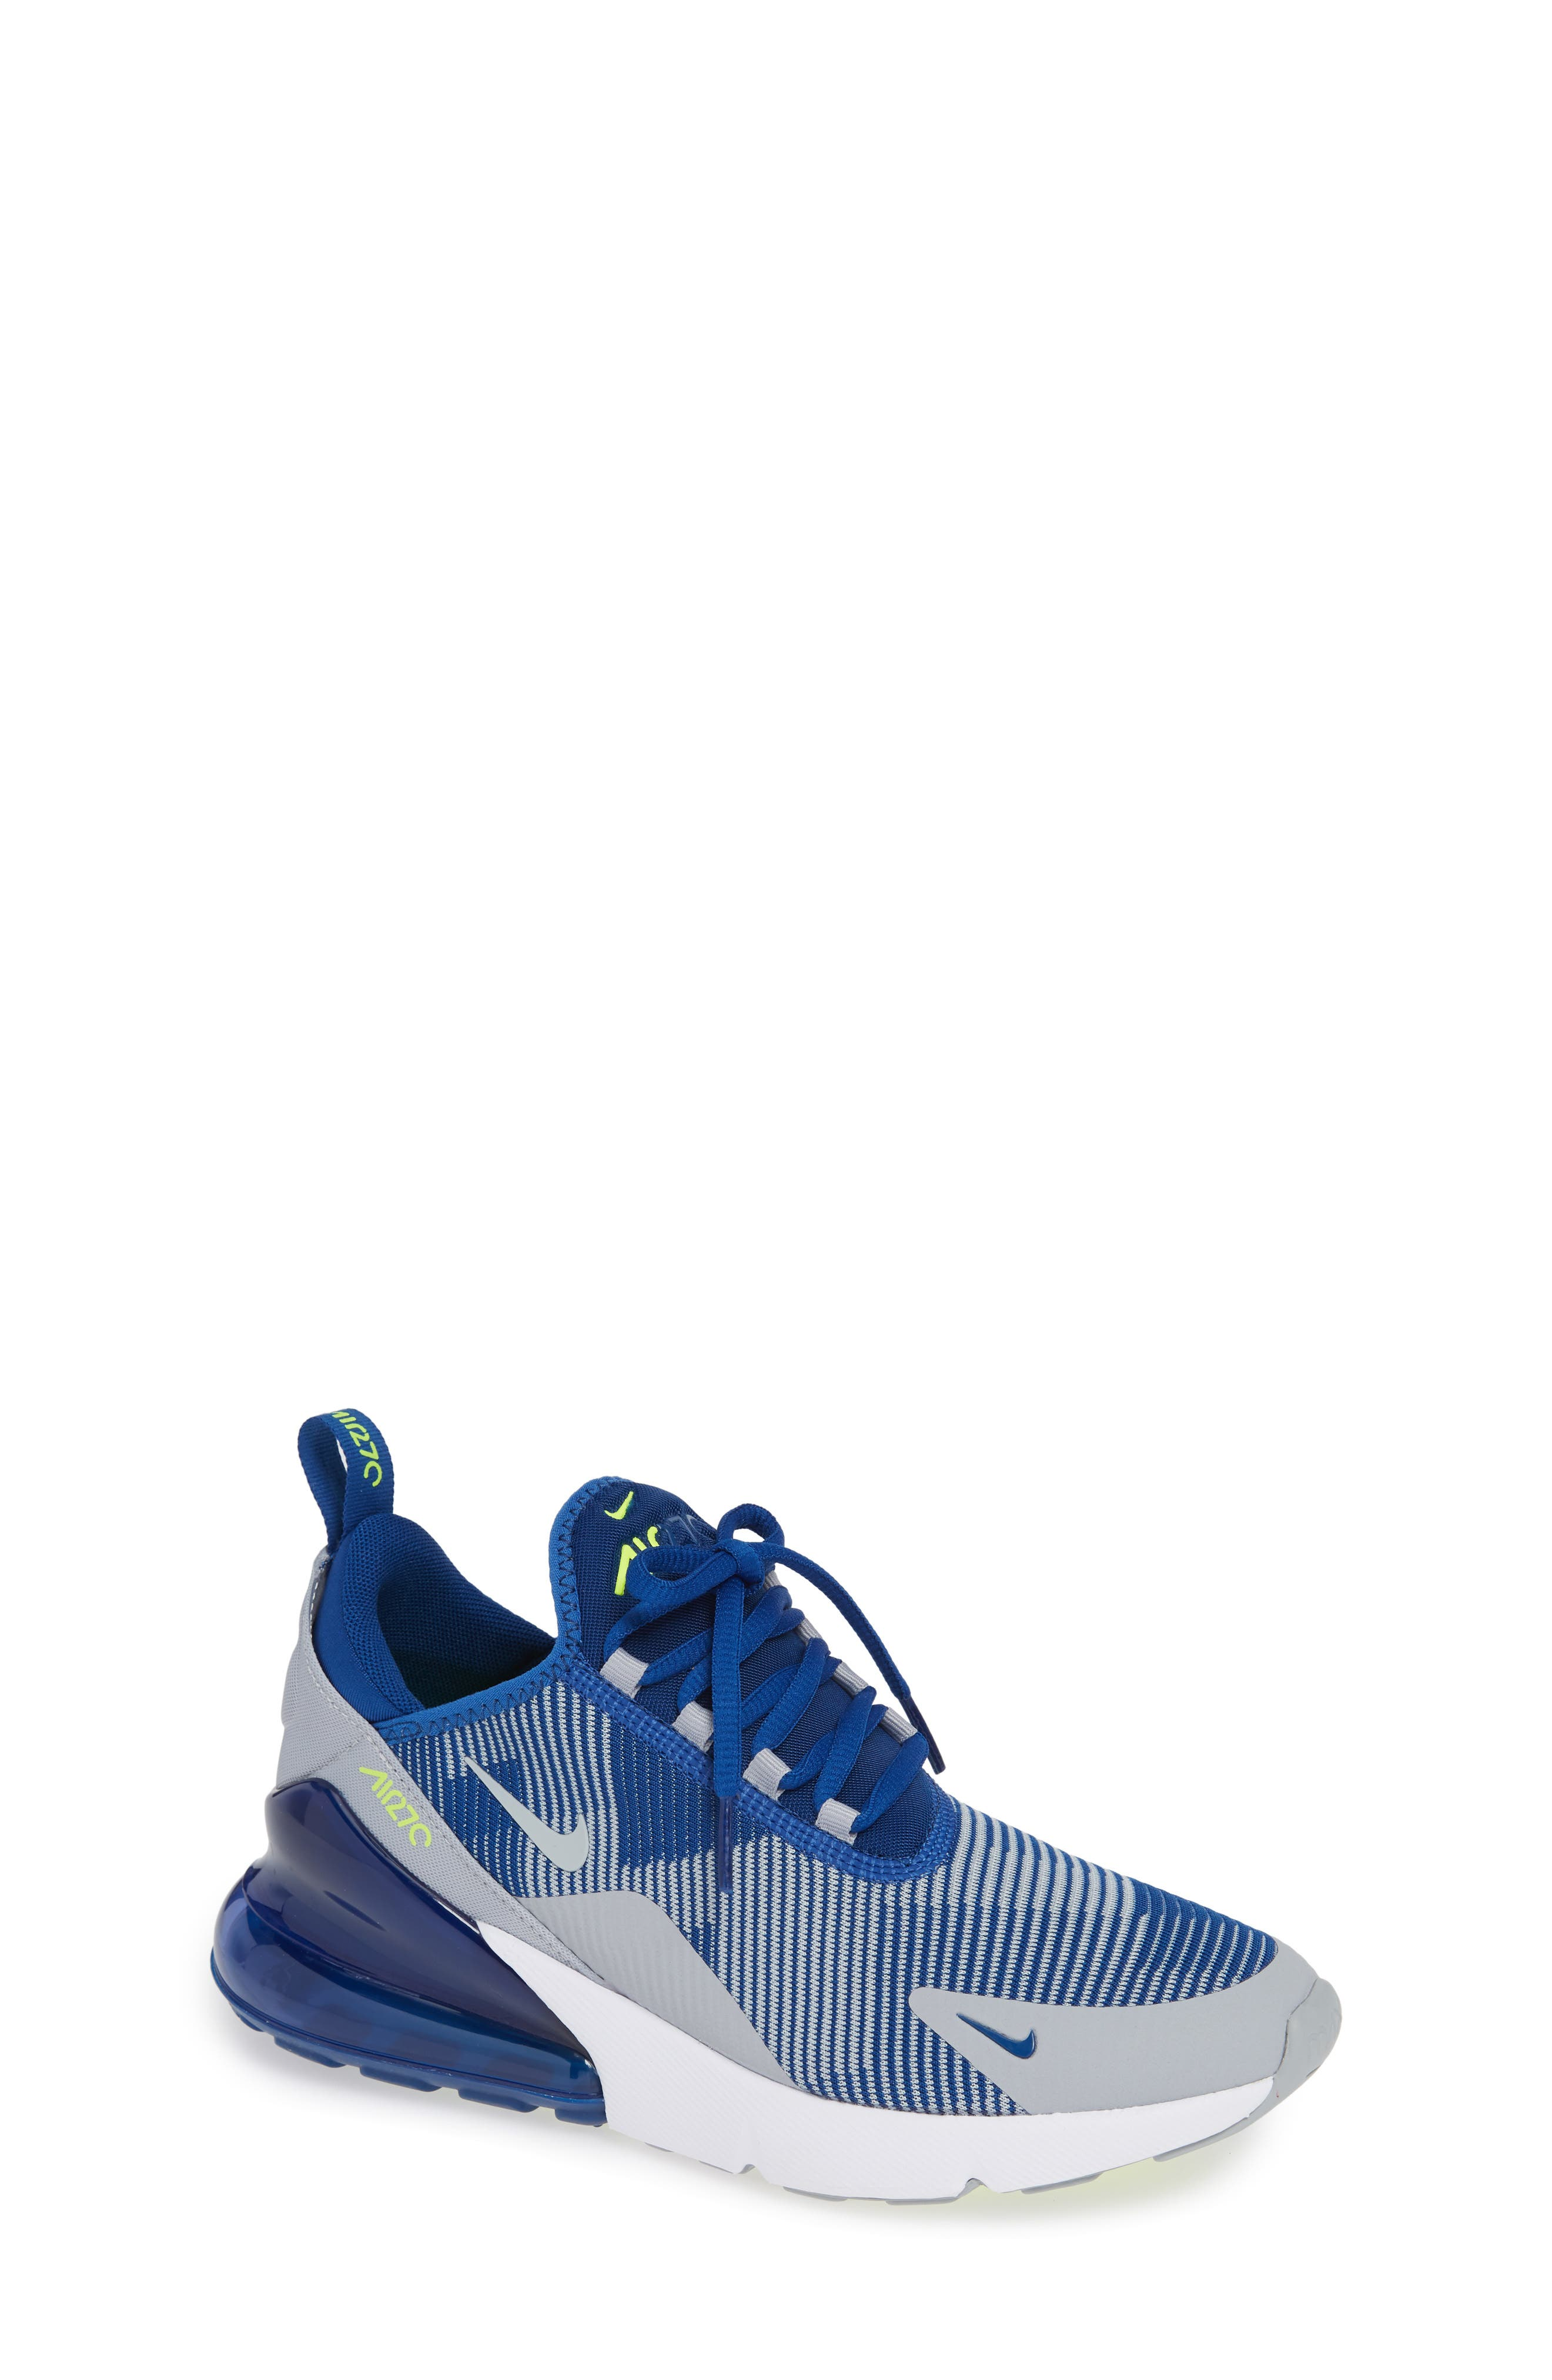 Air Max 270 Sneaker, Main, color, BLUE/ GREY/ VOLT/ WHITE